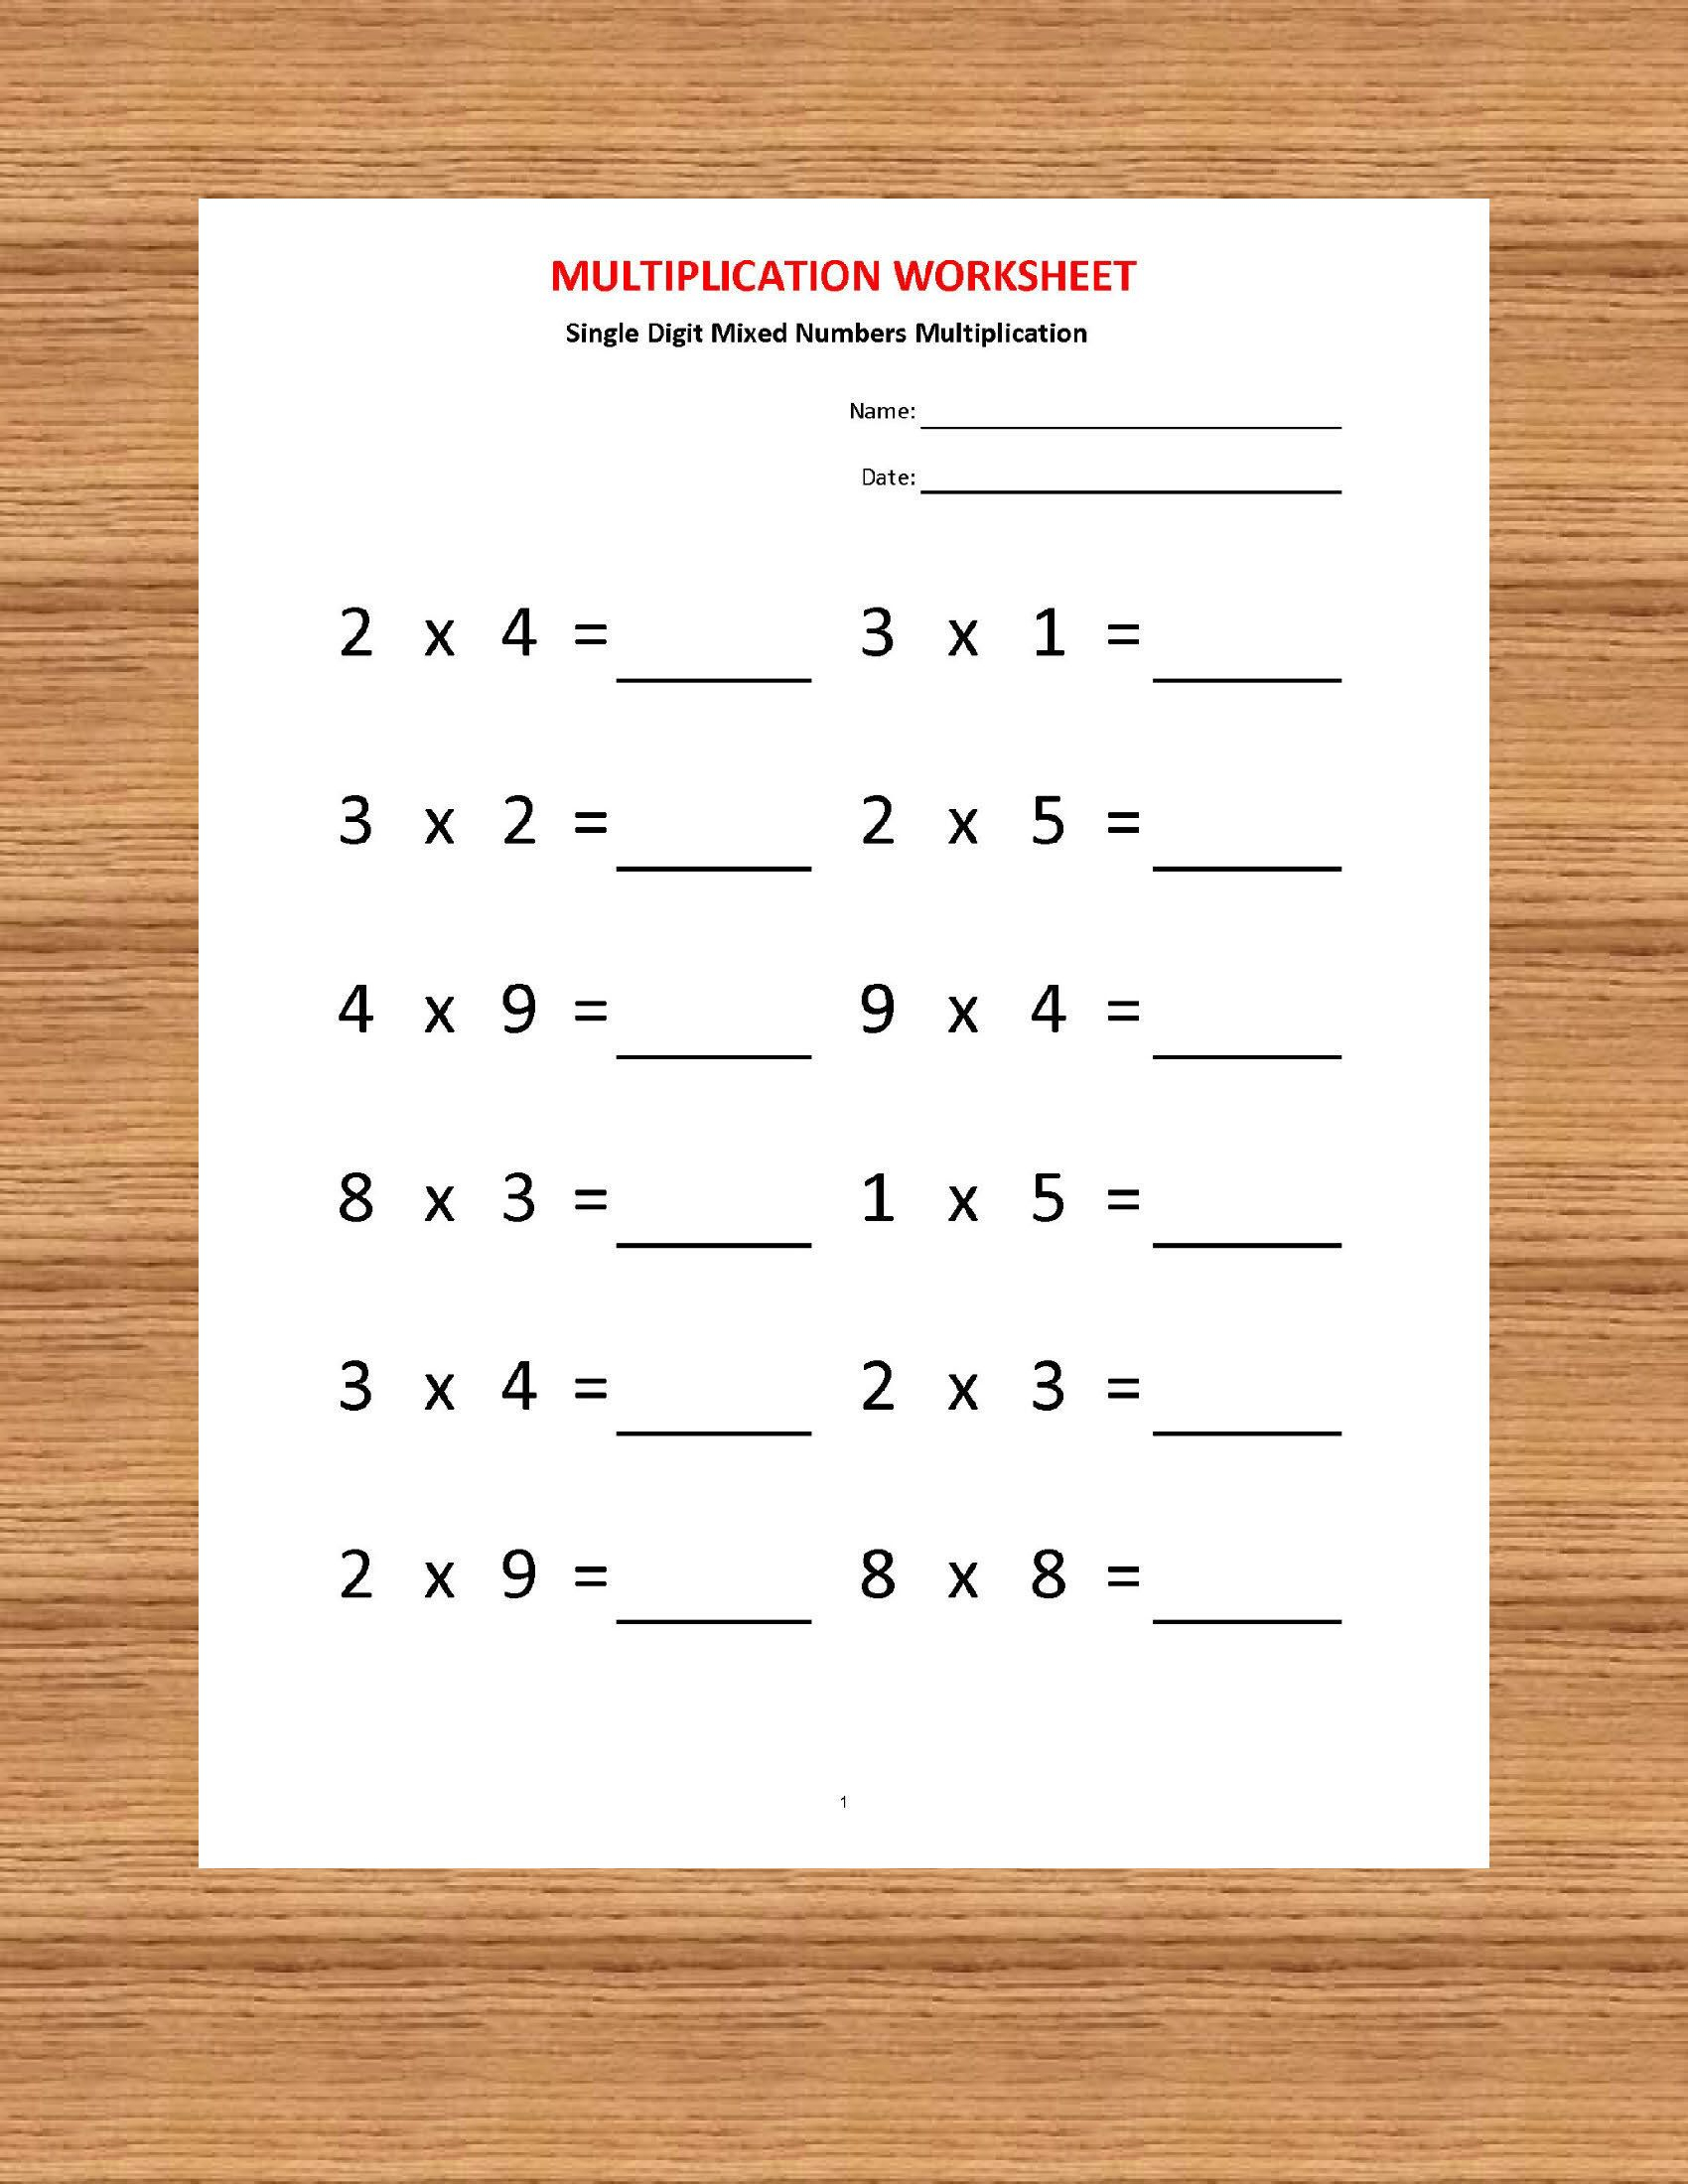 Worksheets On Multiplication For Grade 2